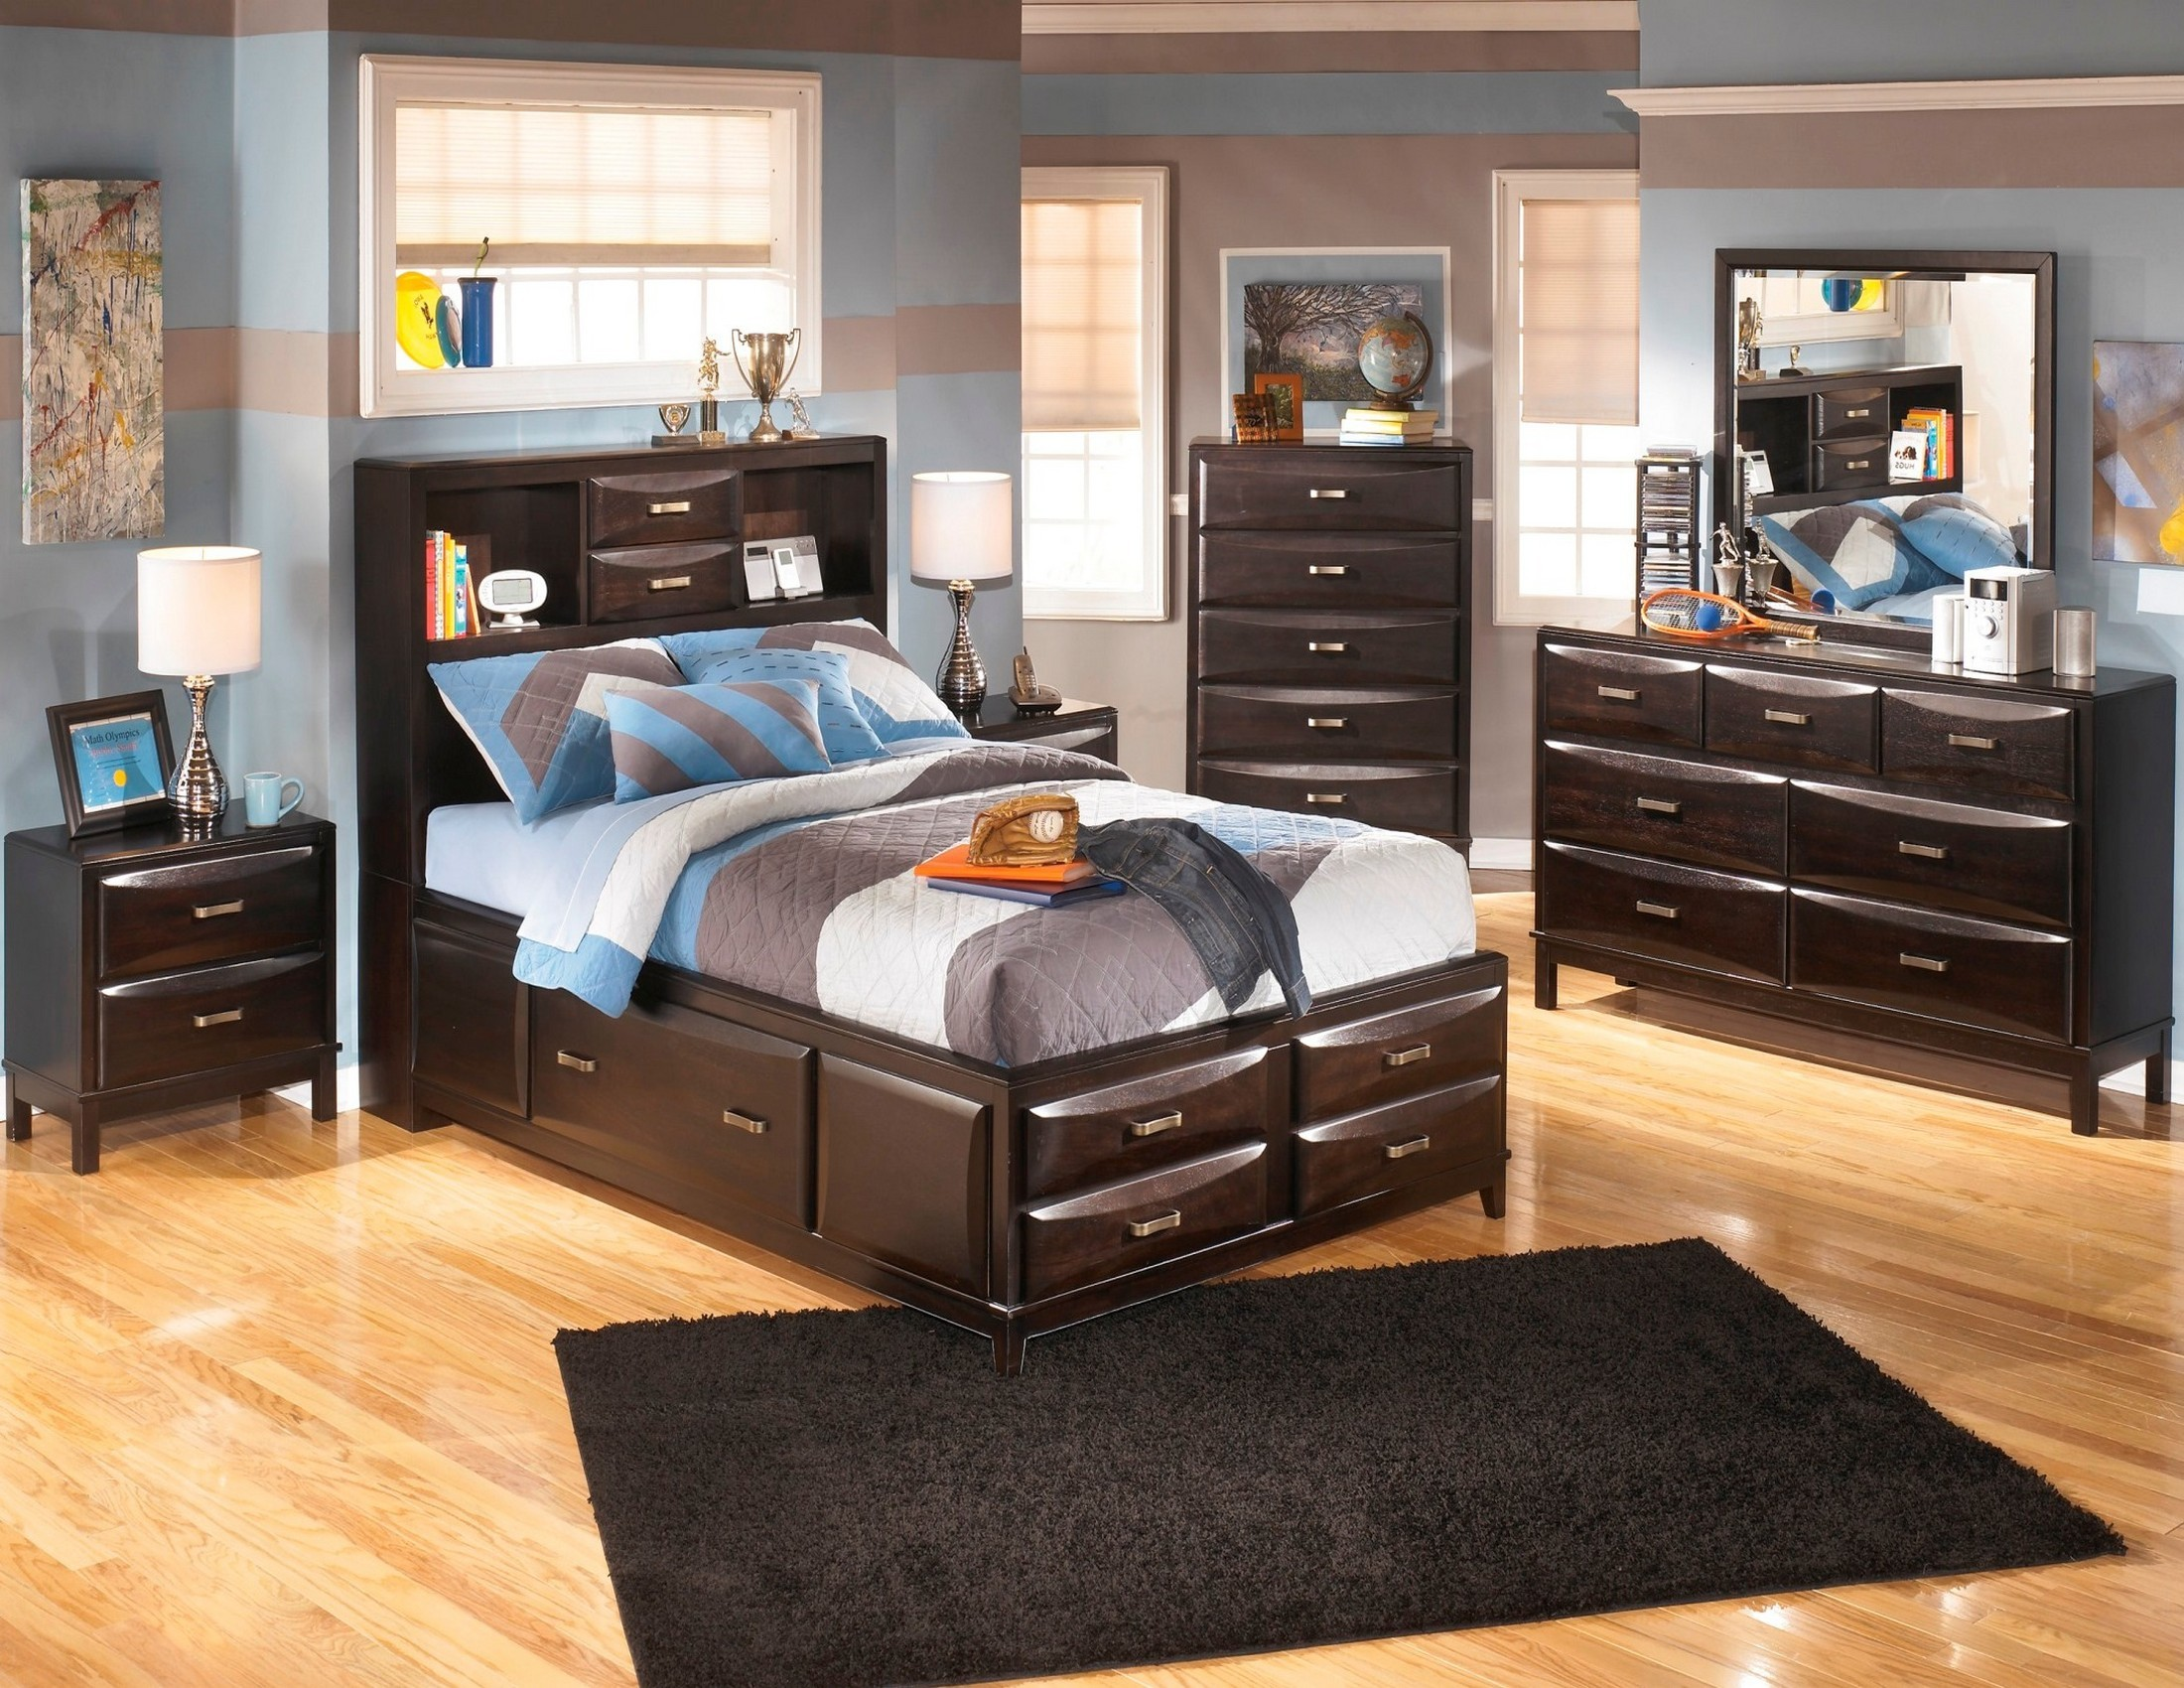 Kira youth storage bedroom set from ashley b473 coleman furniture for Youth storage bedroom furniture